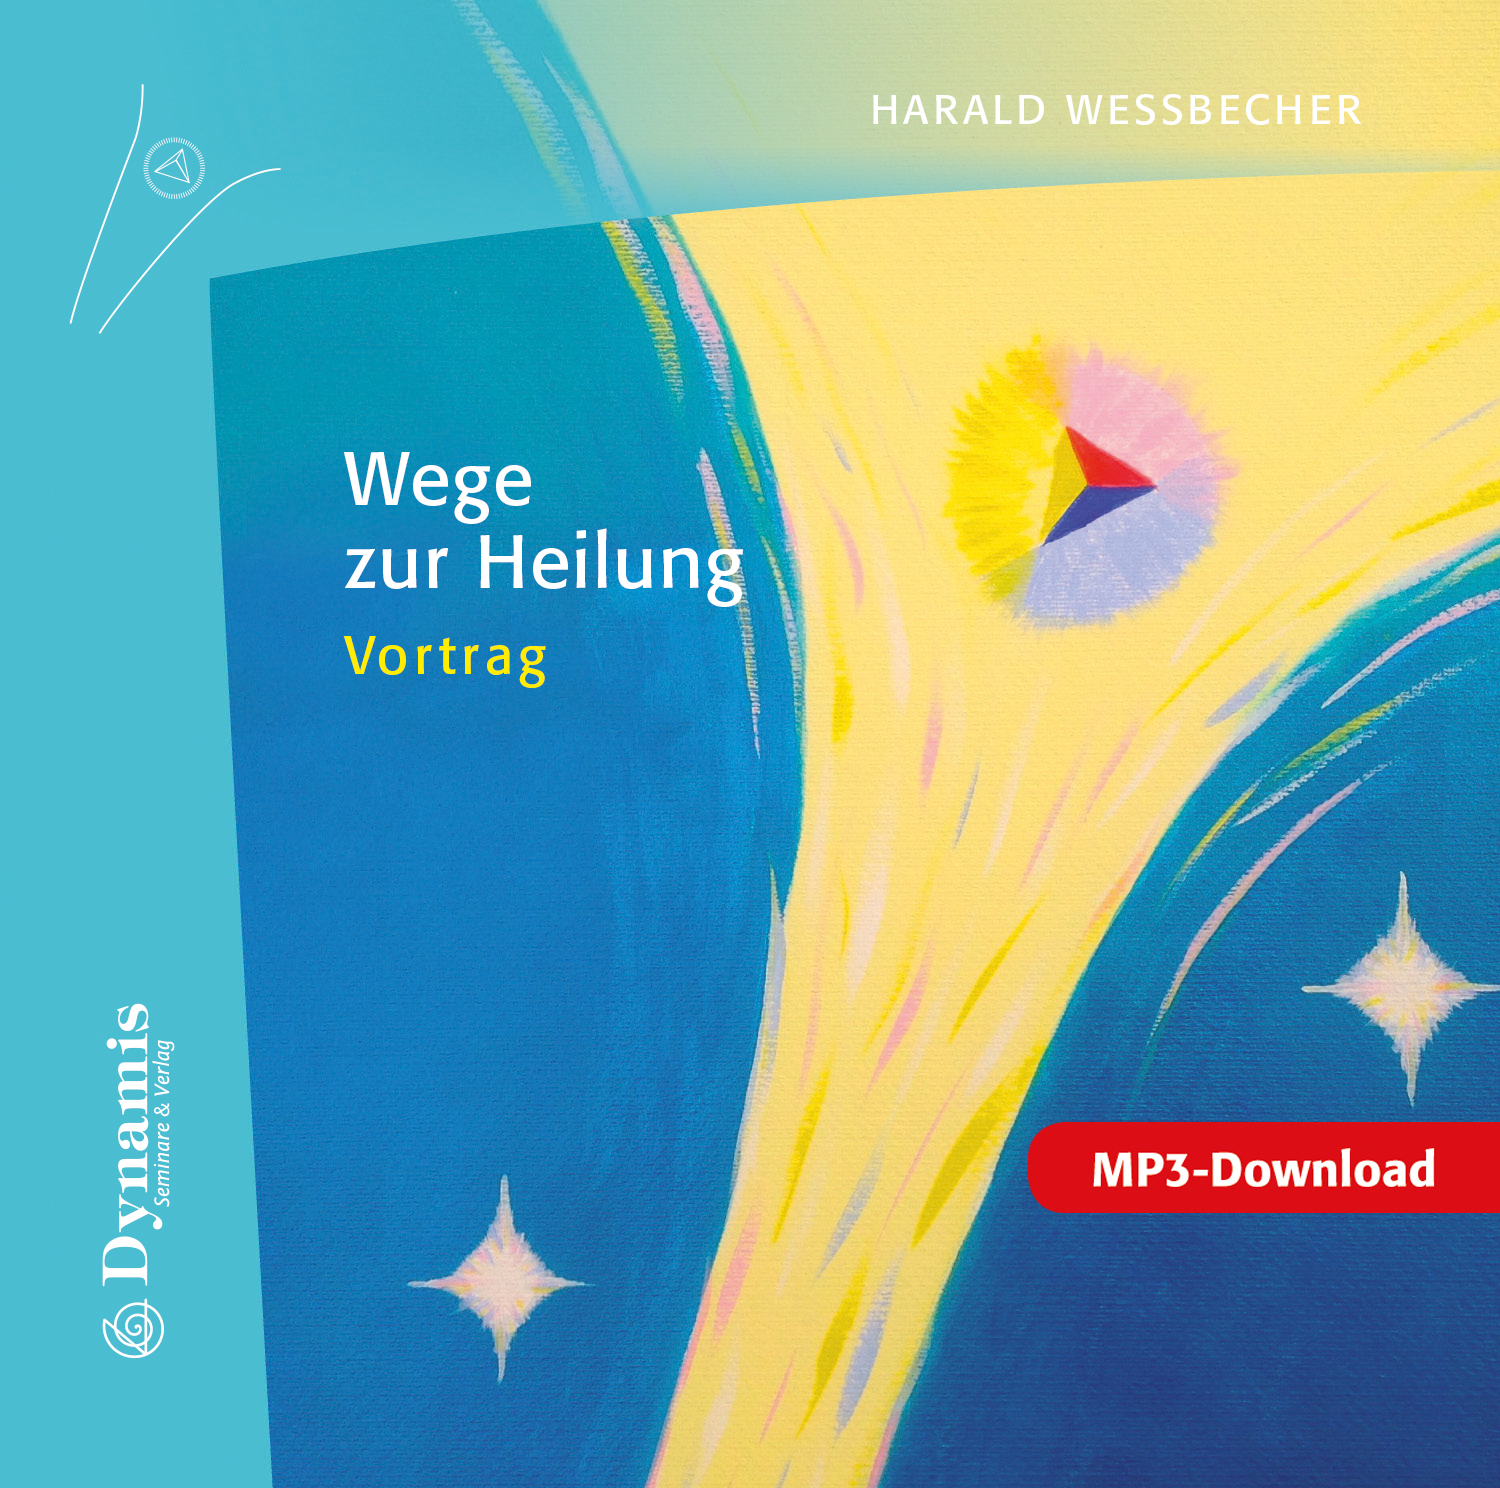 Wege zur Heilung, MP3 (Download)